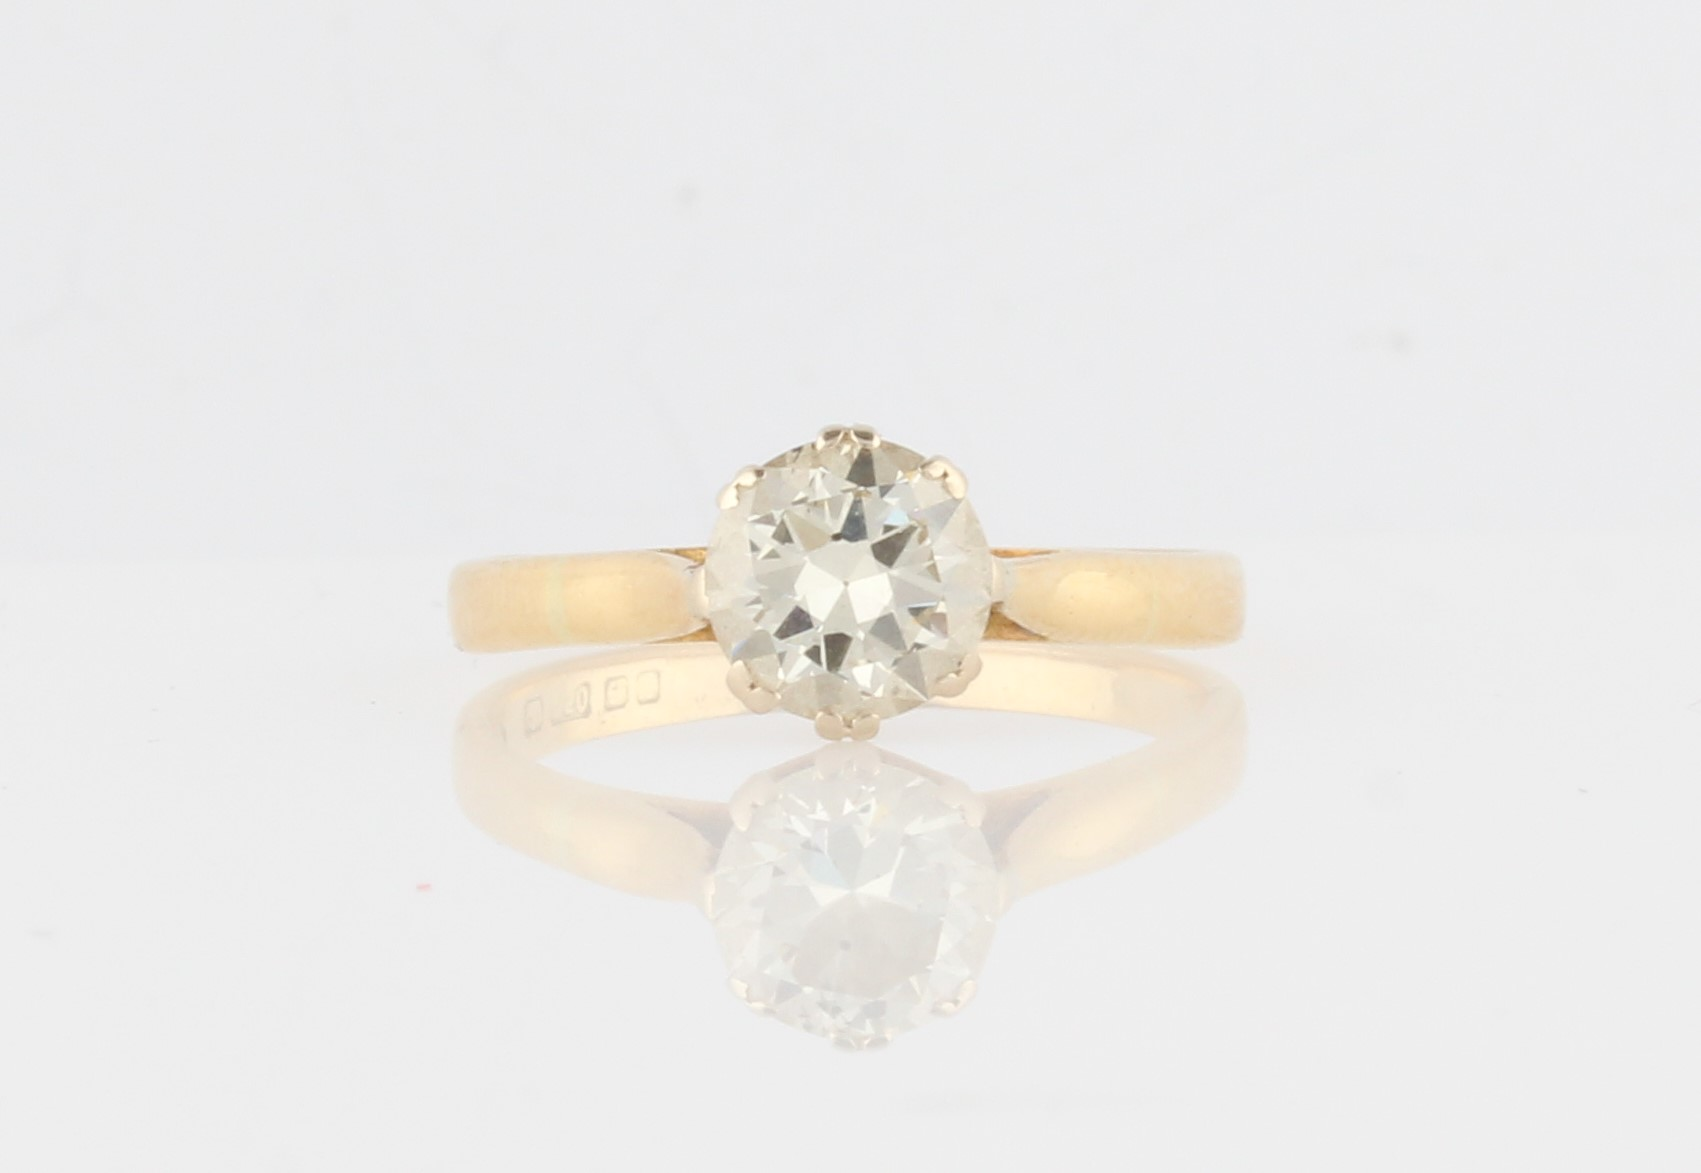 Lot 19 - An 18ct yellow gold diamond solitaire ring, set with a round brilliant cut diamond measuring approx.